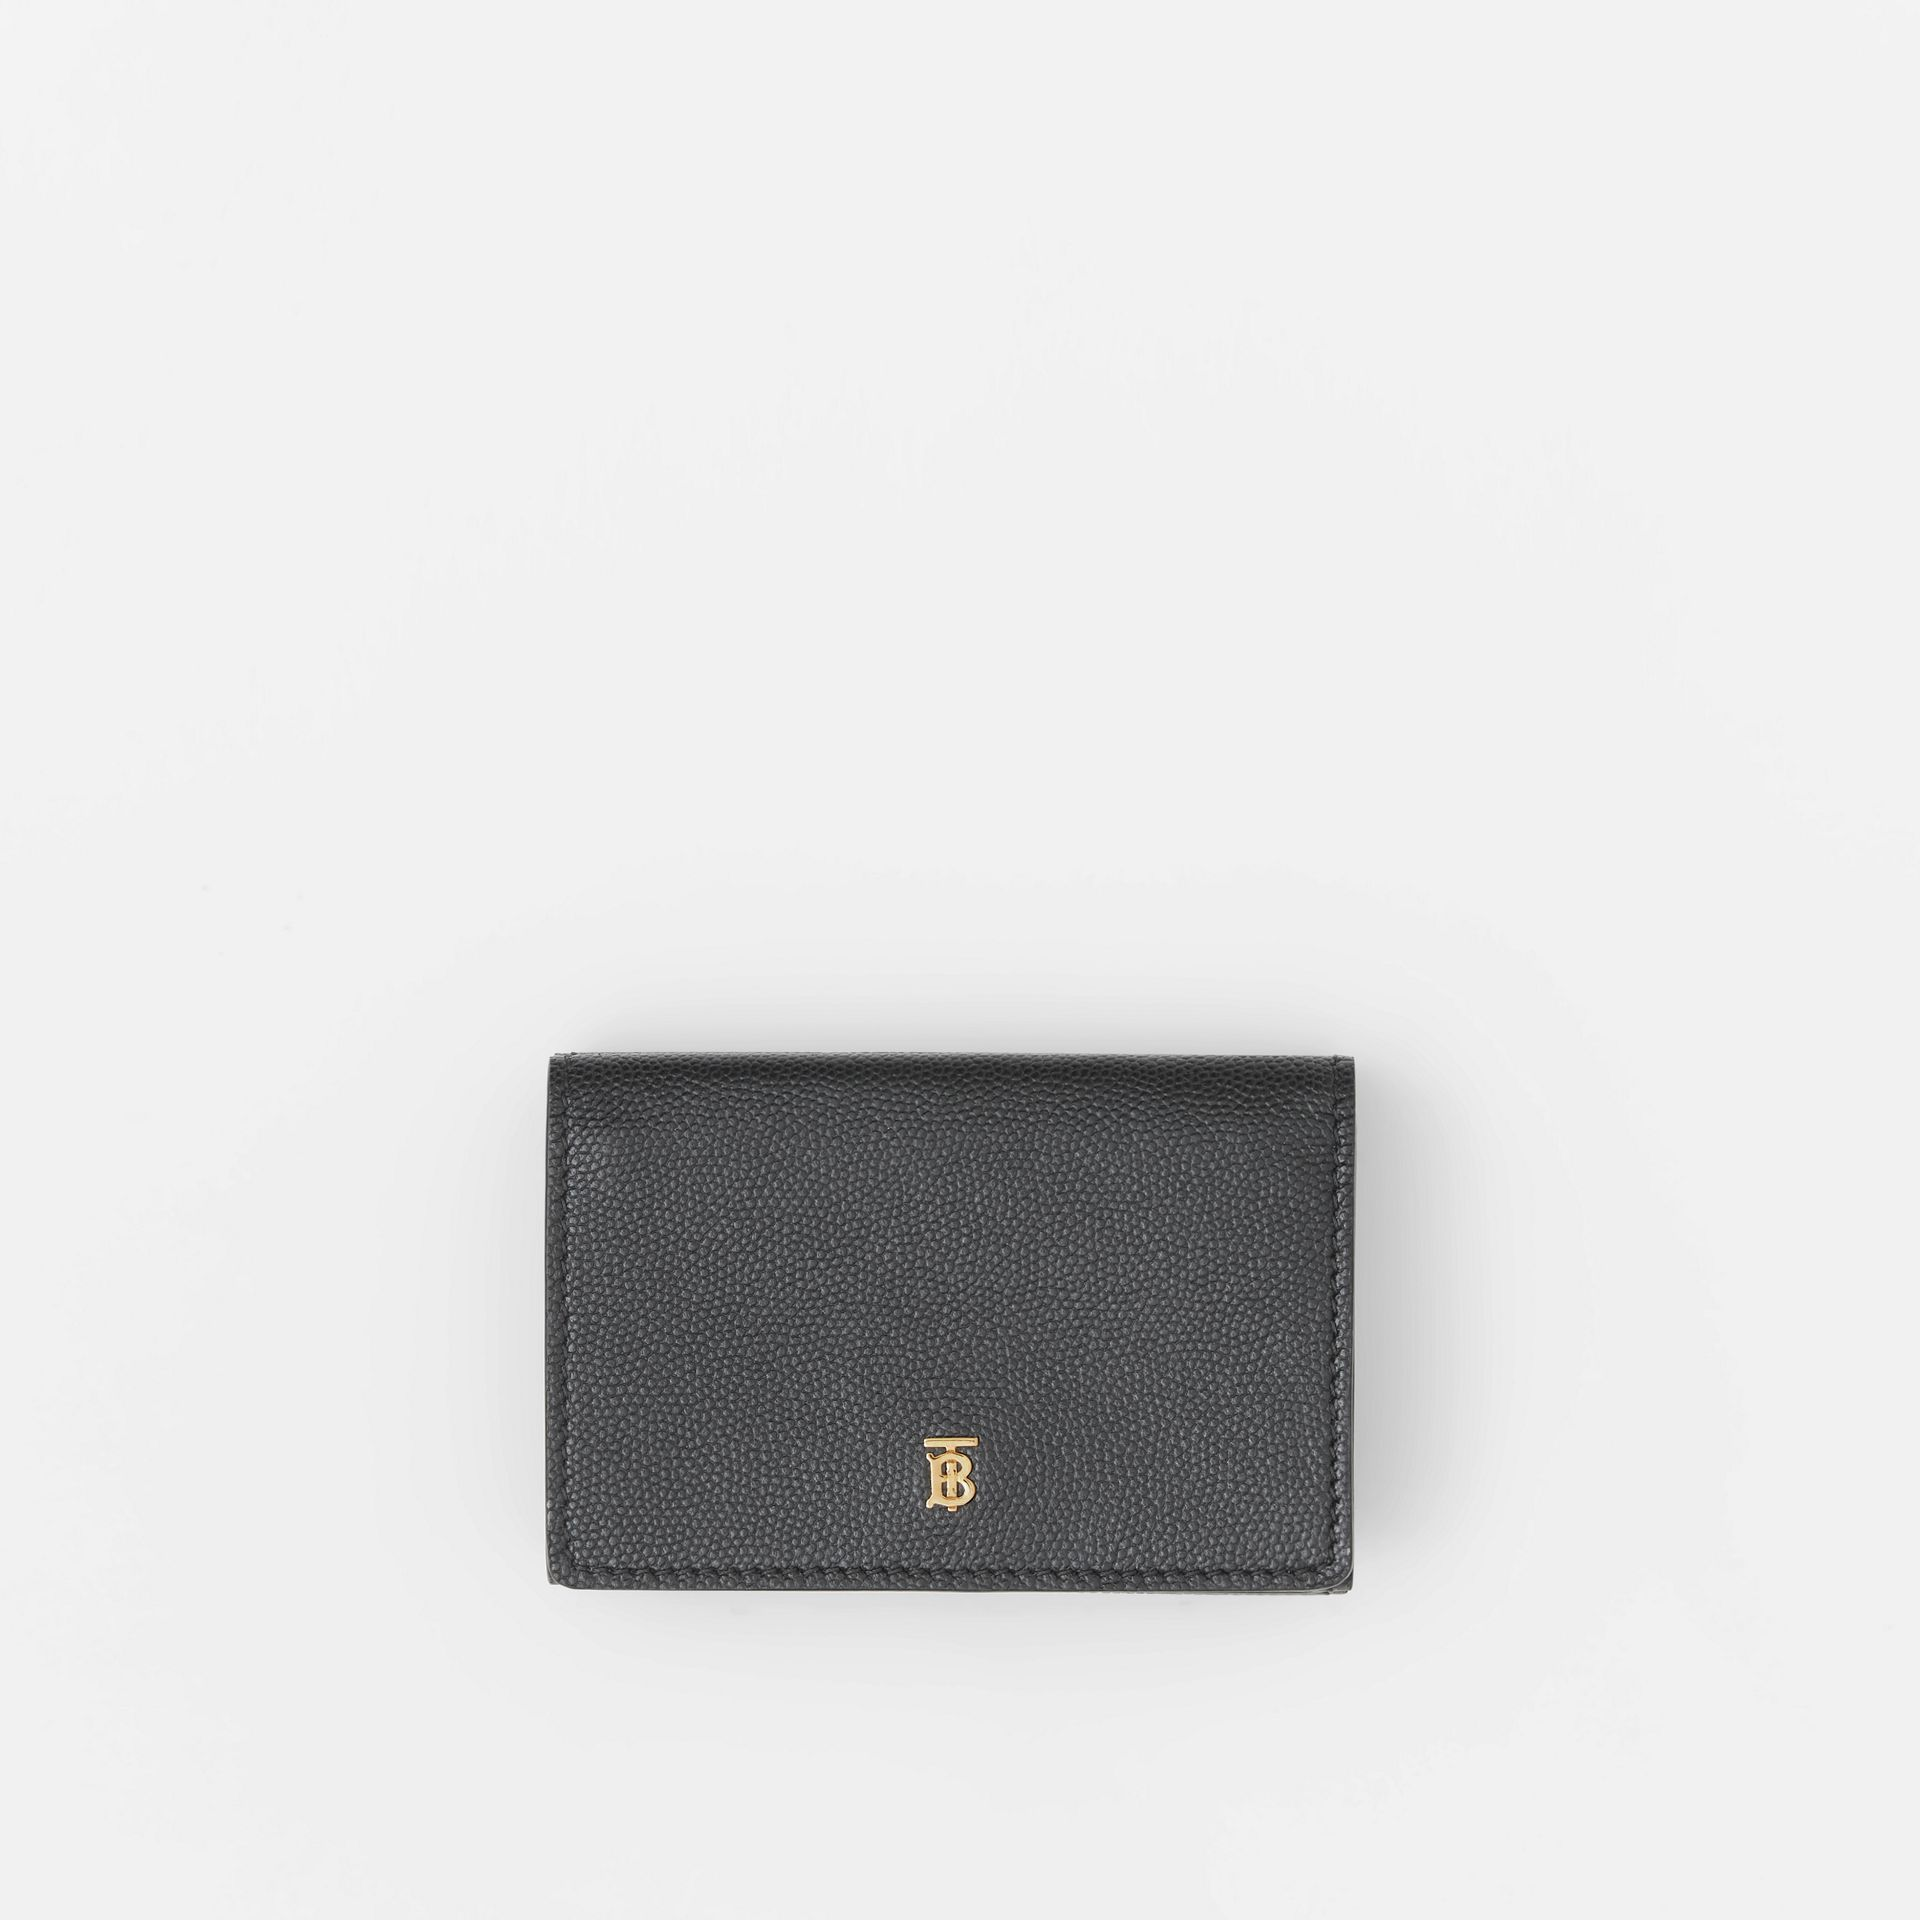 Small Grainy Leather Folding Wallet in Black - Women | Burberry - gallery image 0